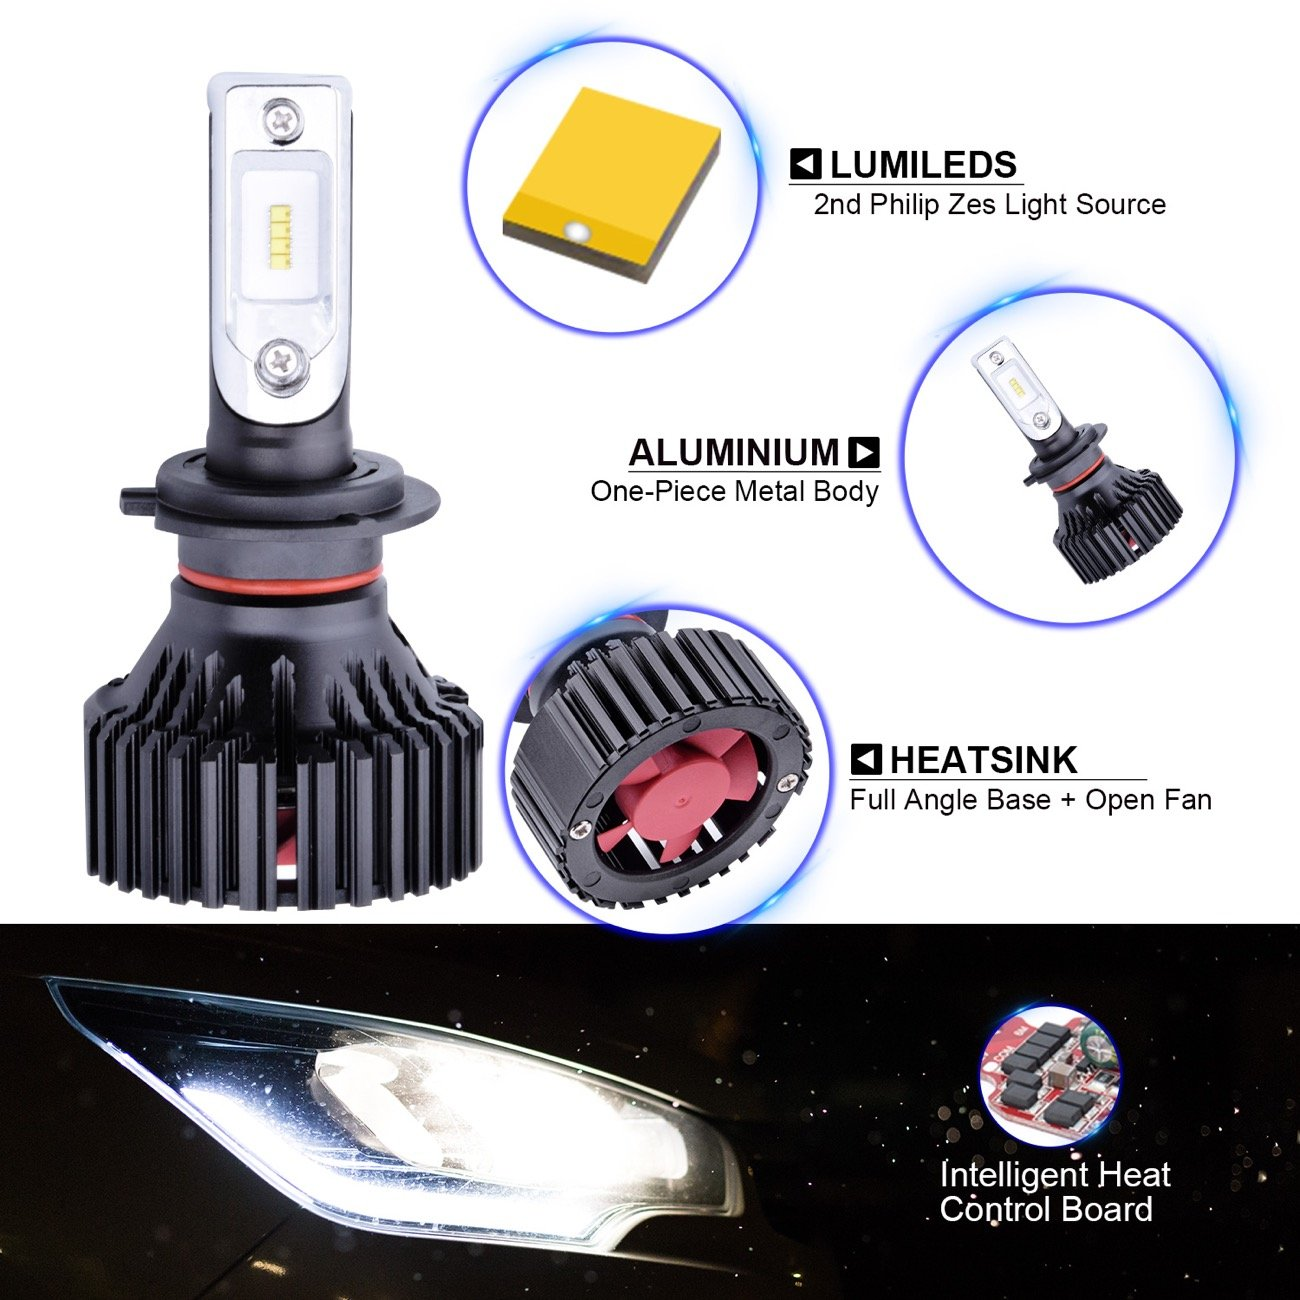 G H4 9003 Hb2 High Low Beam Dual Headlamp 8000 Head Lamp Fuso Lumens With Extremely Bright Phi Zes Aec Chips All In One Led Headlight Conversion Kit